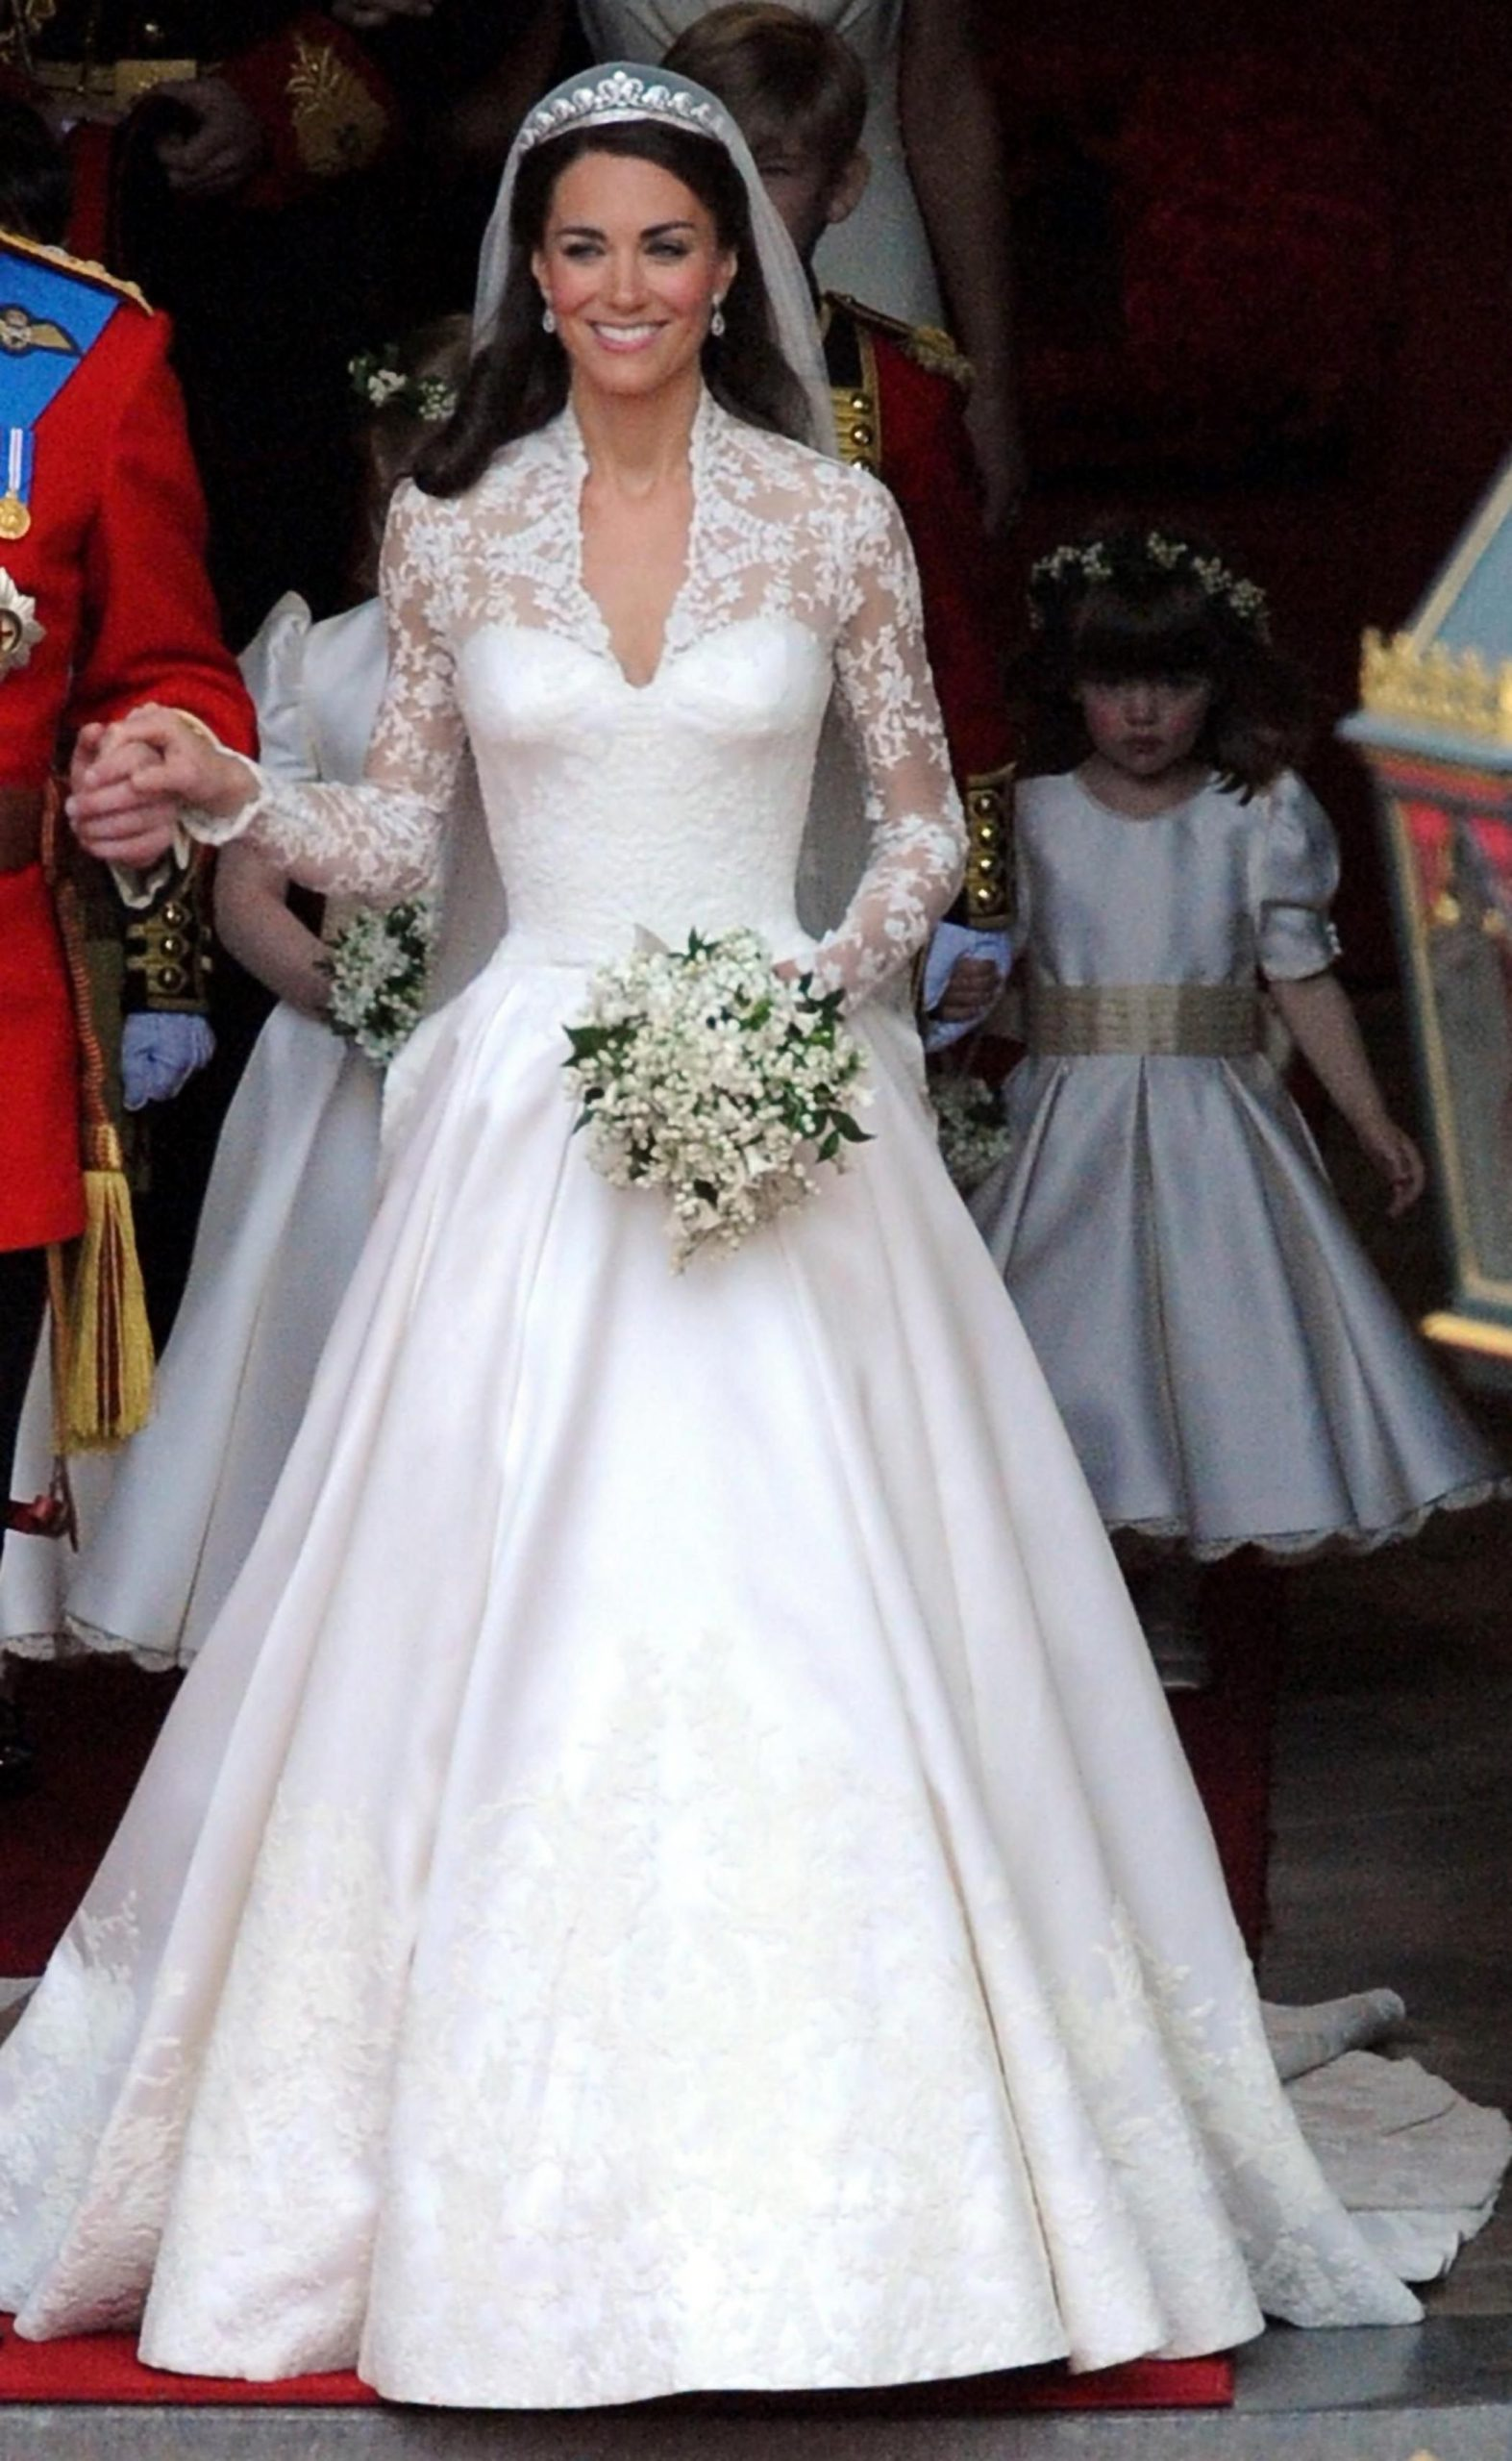 10 New Rules For Wedding Dresses | Kate Middleton